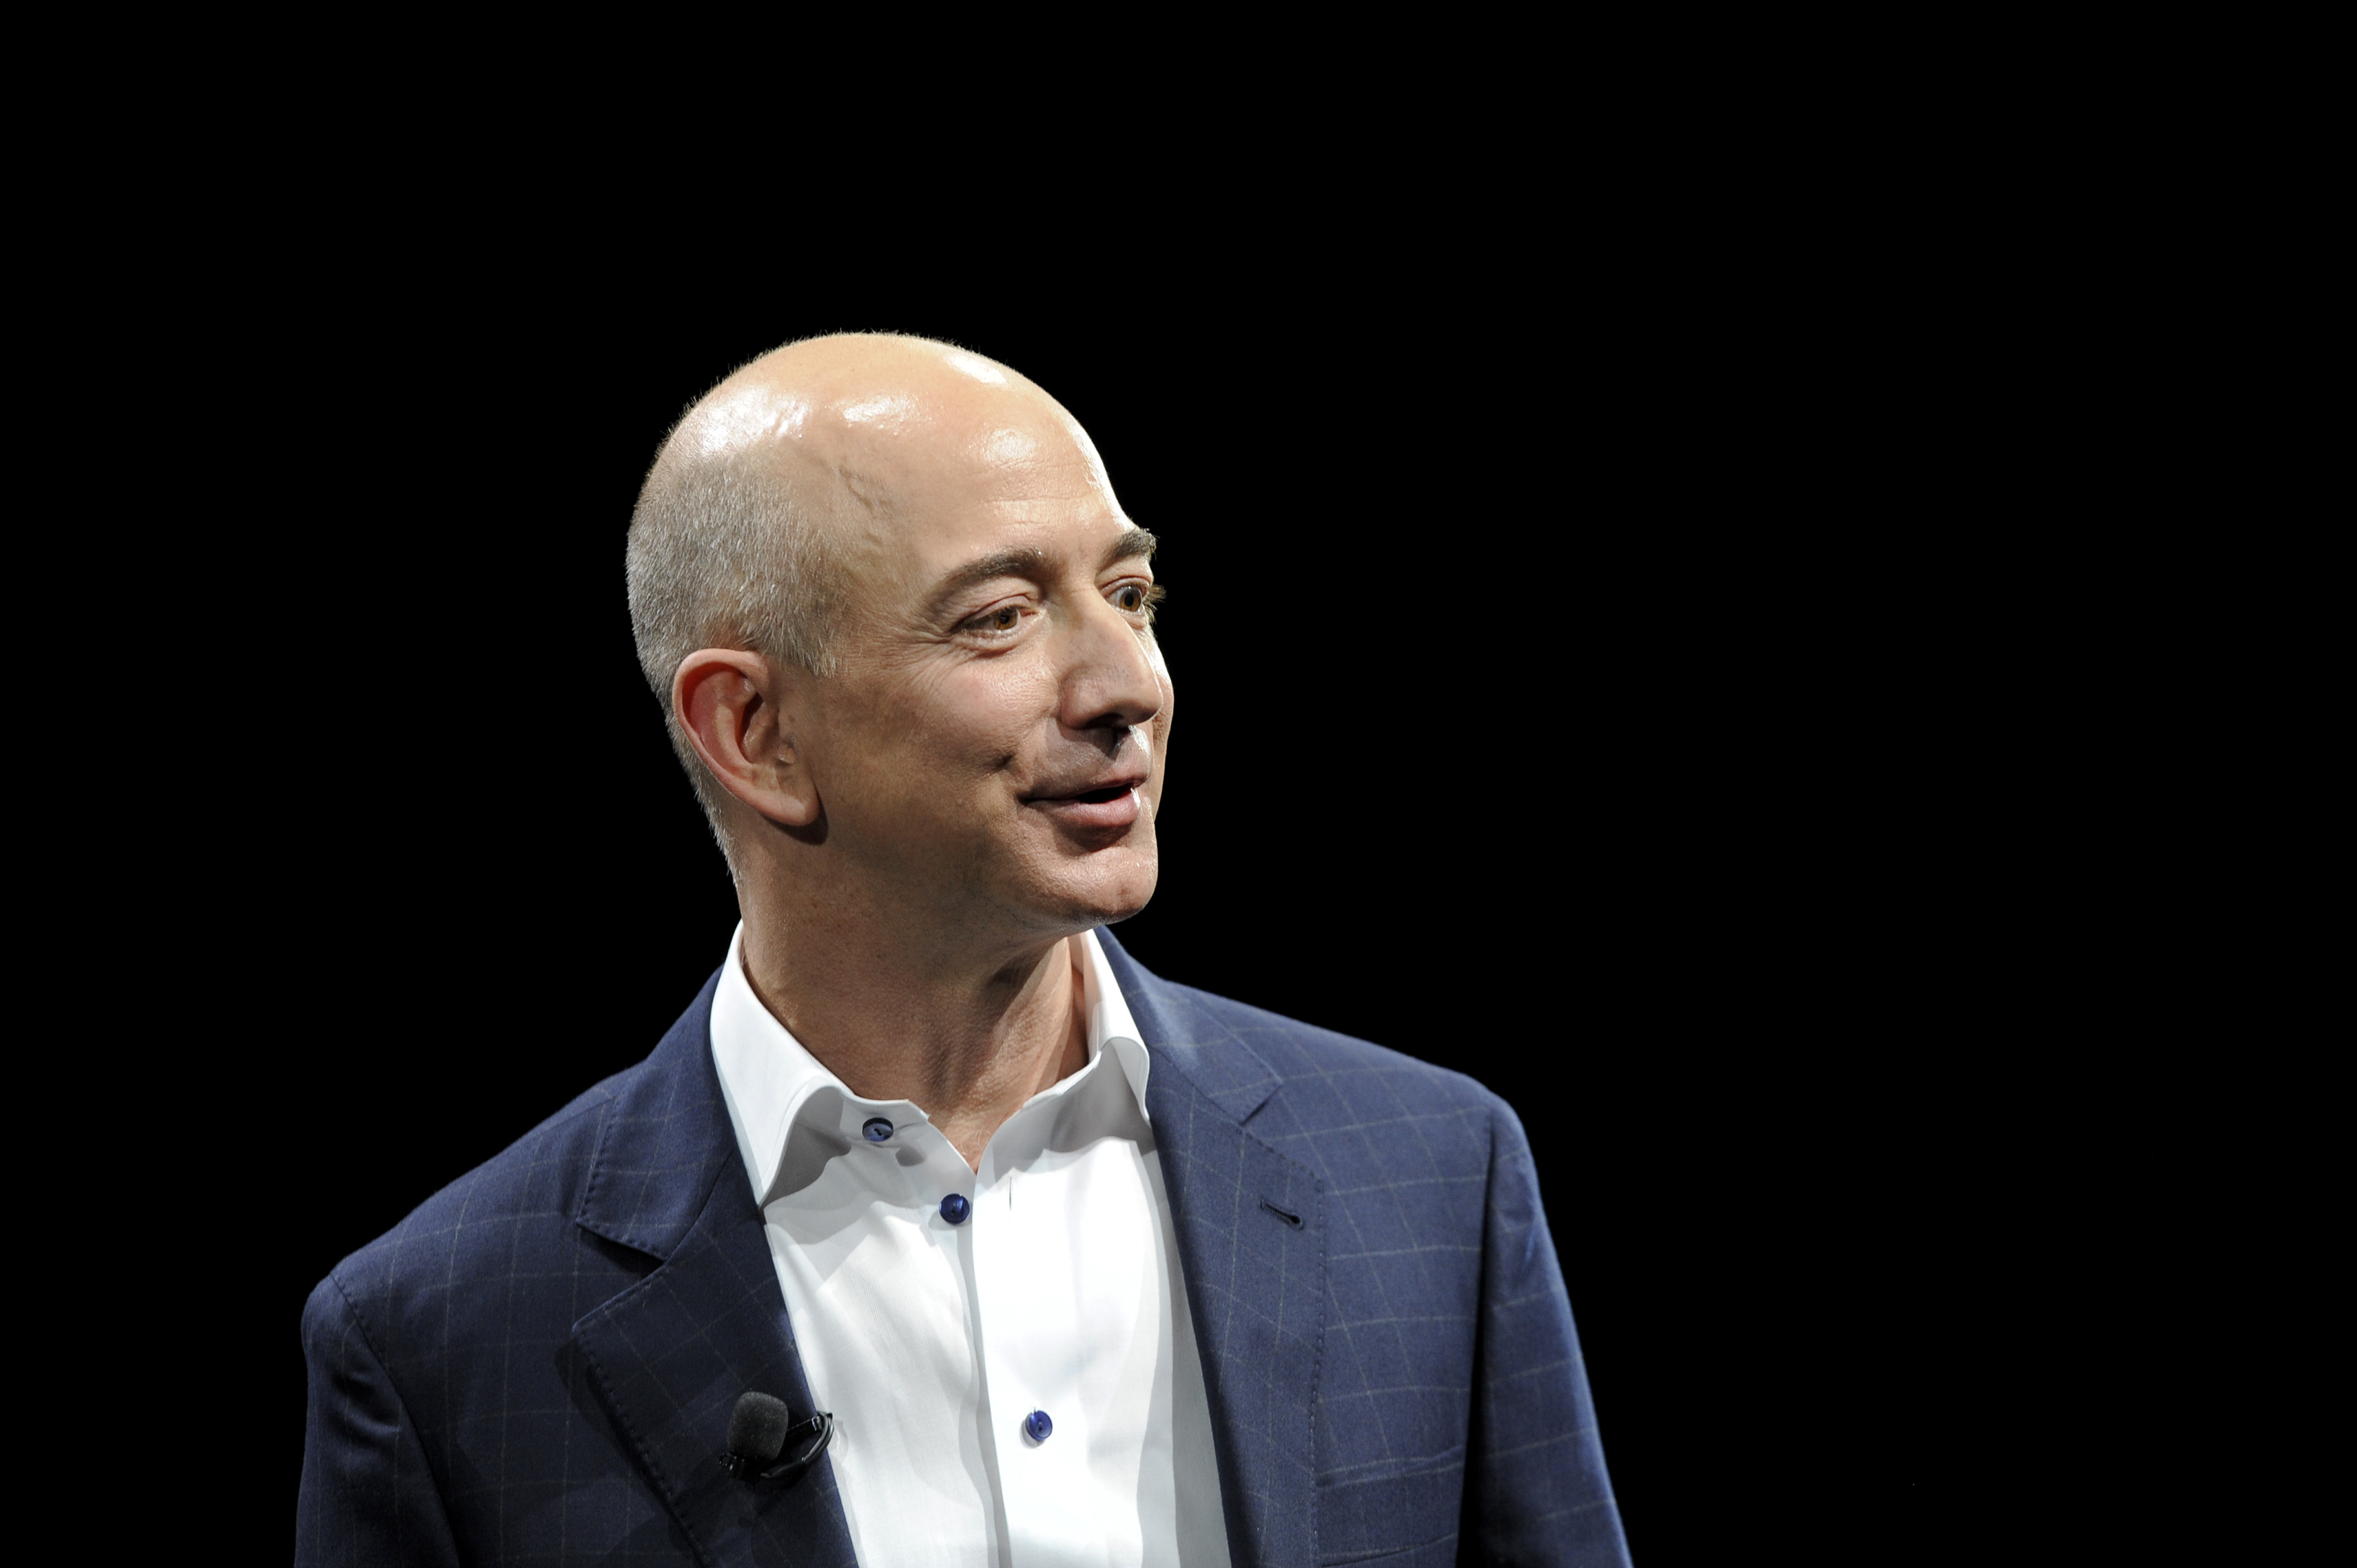 jeff-bezos-amazon-e-commerce-internet